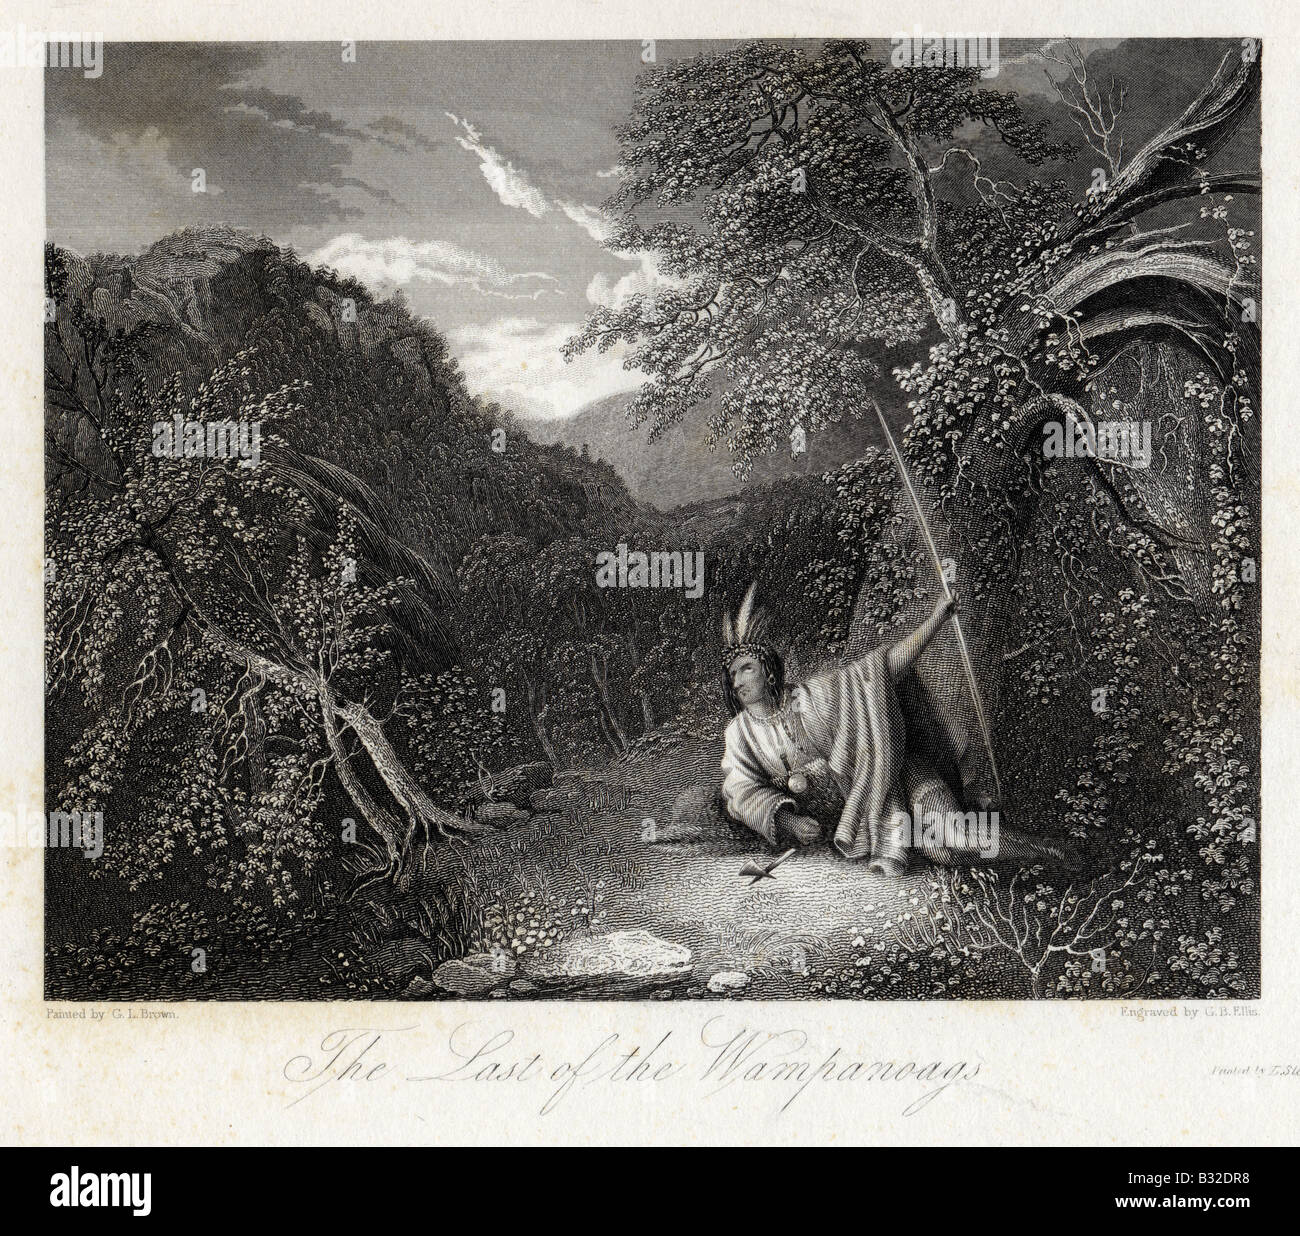 'The Last of the Wampanoags' by G.I. Brown, engraved by G.B. Ellis, circa 1850 antique engraving. - Stock Image